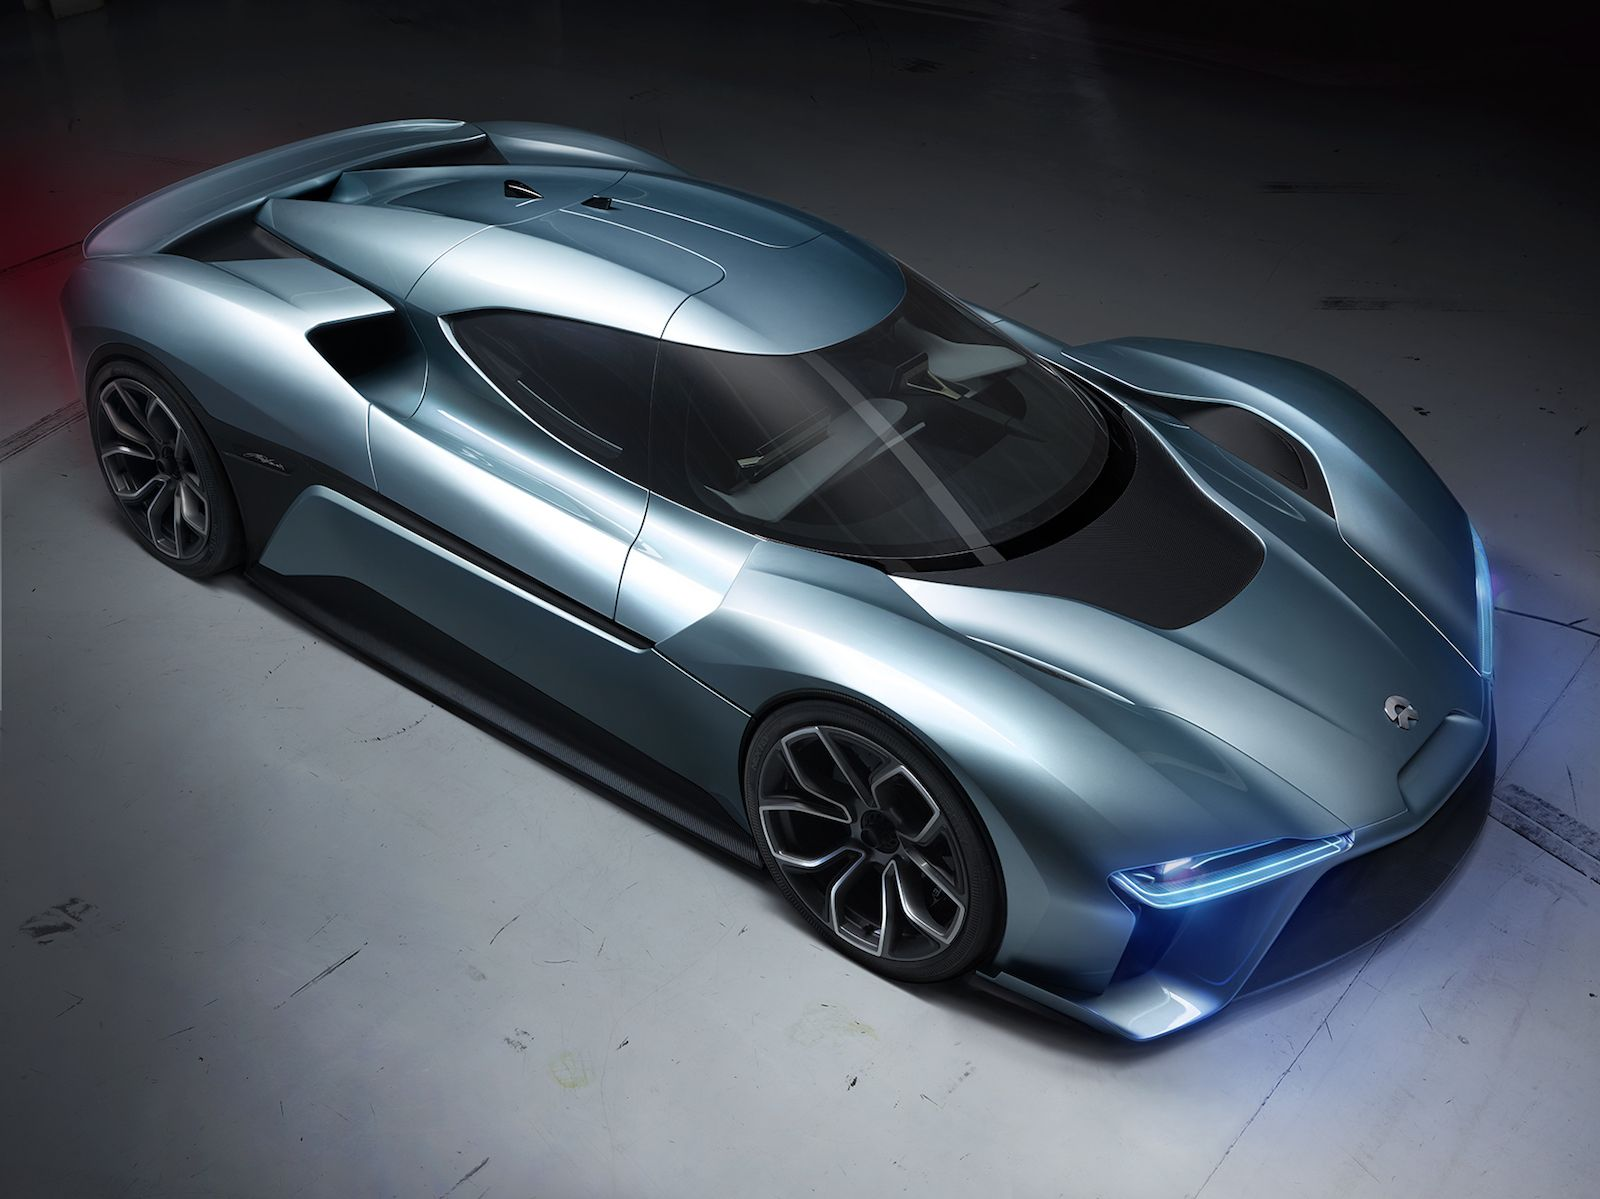 The Nio Ep9 Is The World S Fastest All Electric Supercar Super Cars Hybrid Car Futuristic Cars